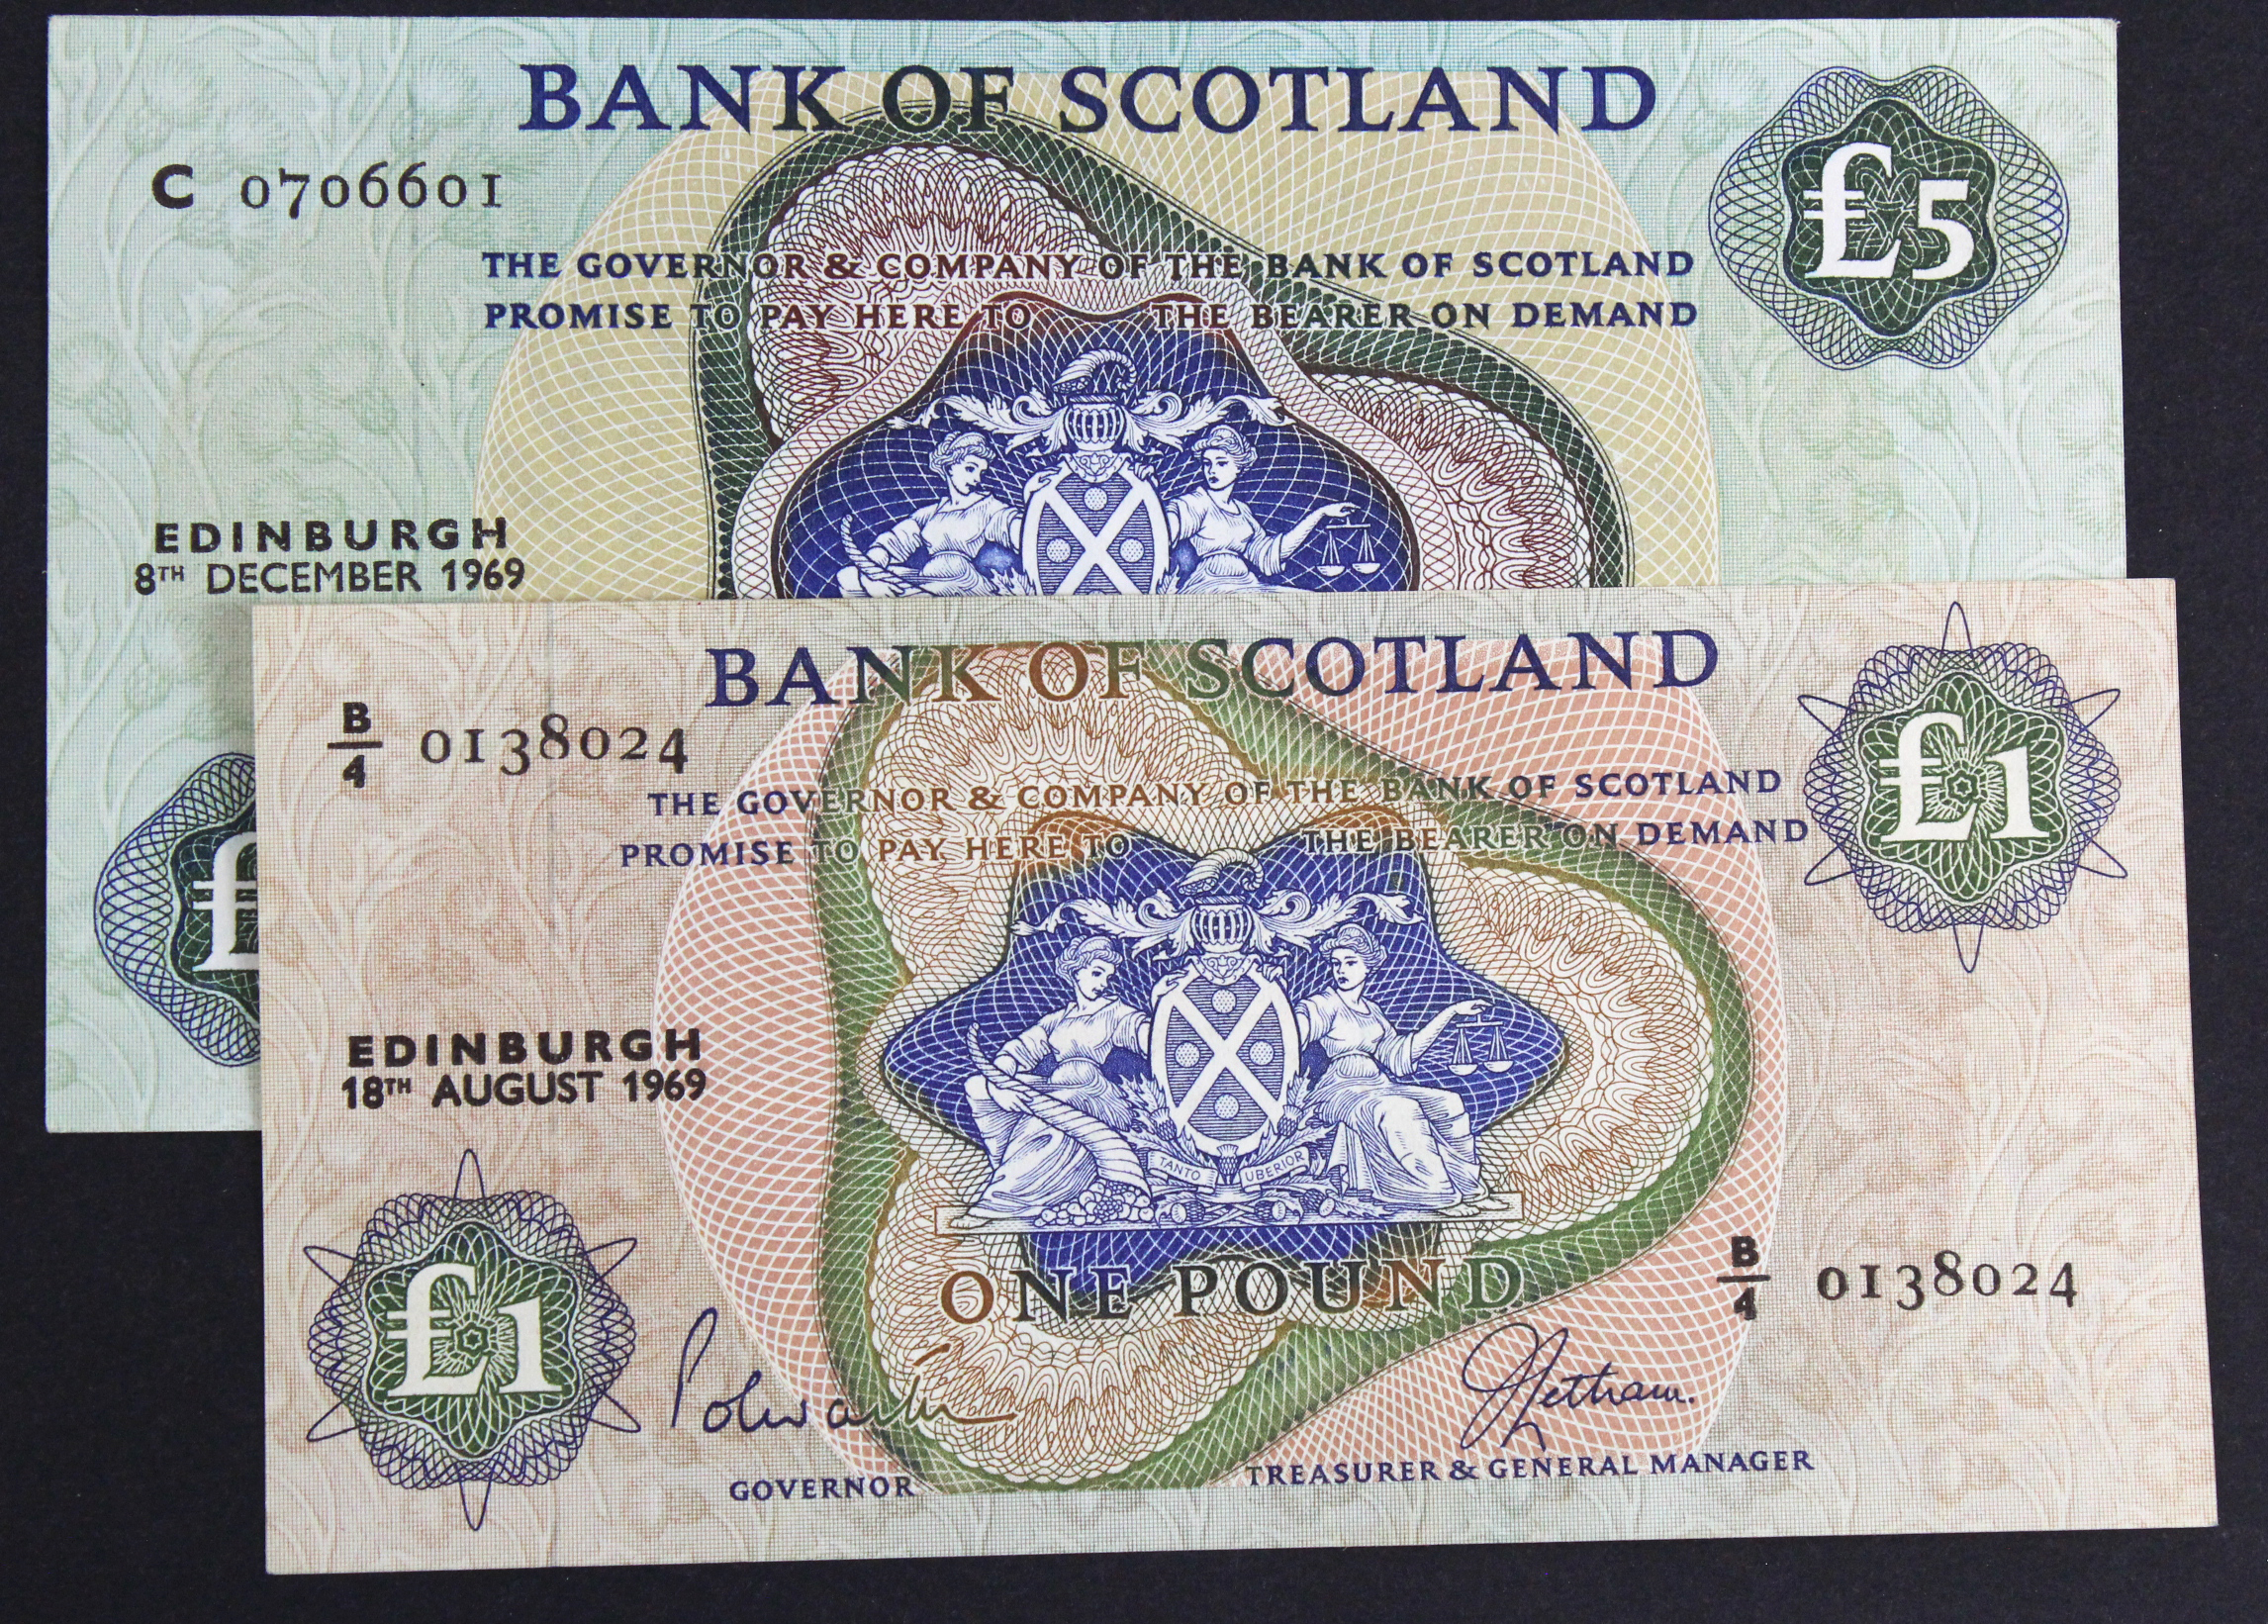 Scotland, Bank of Scotland (2), 5 Pounds dated 8th December 1969, signed Polwarth & Letham, serial C